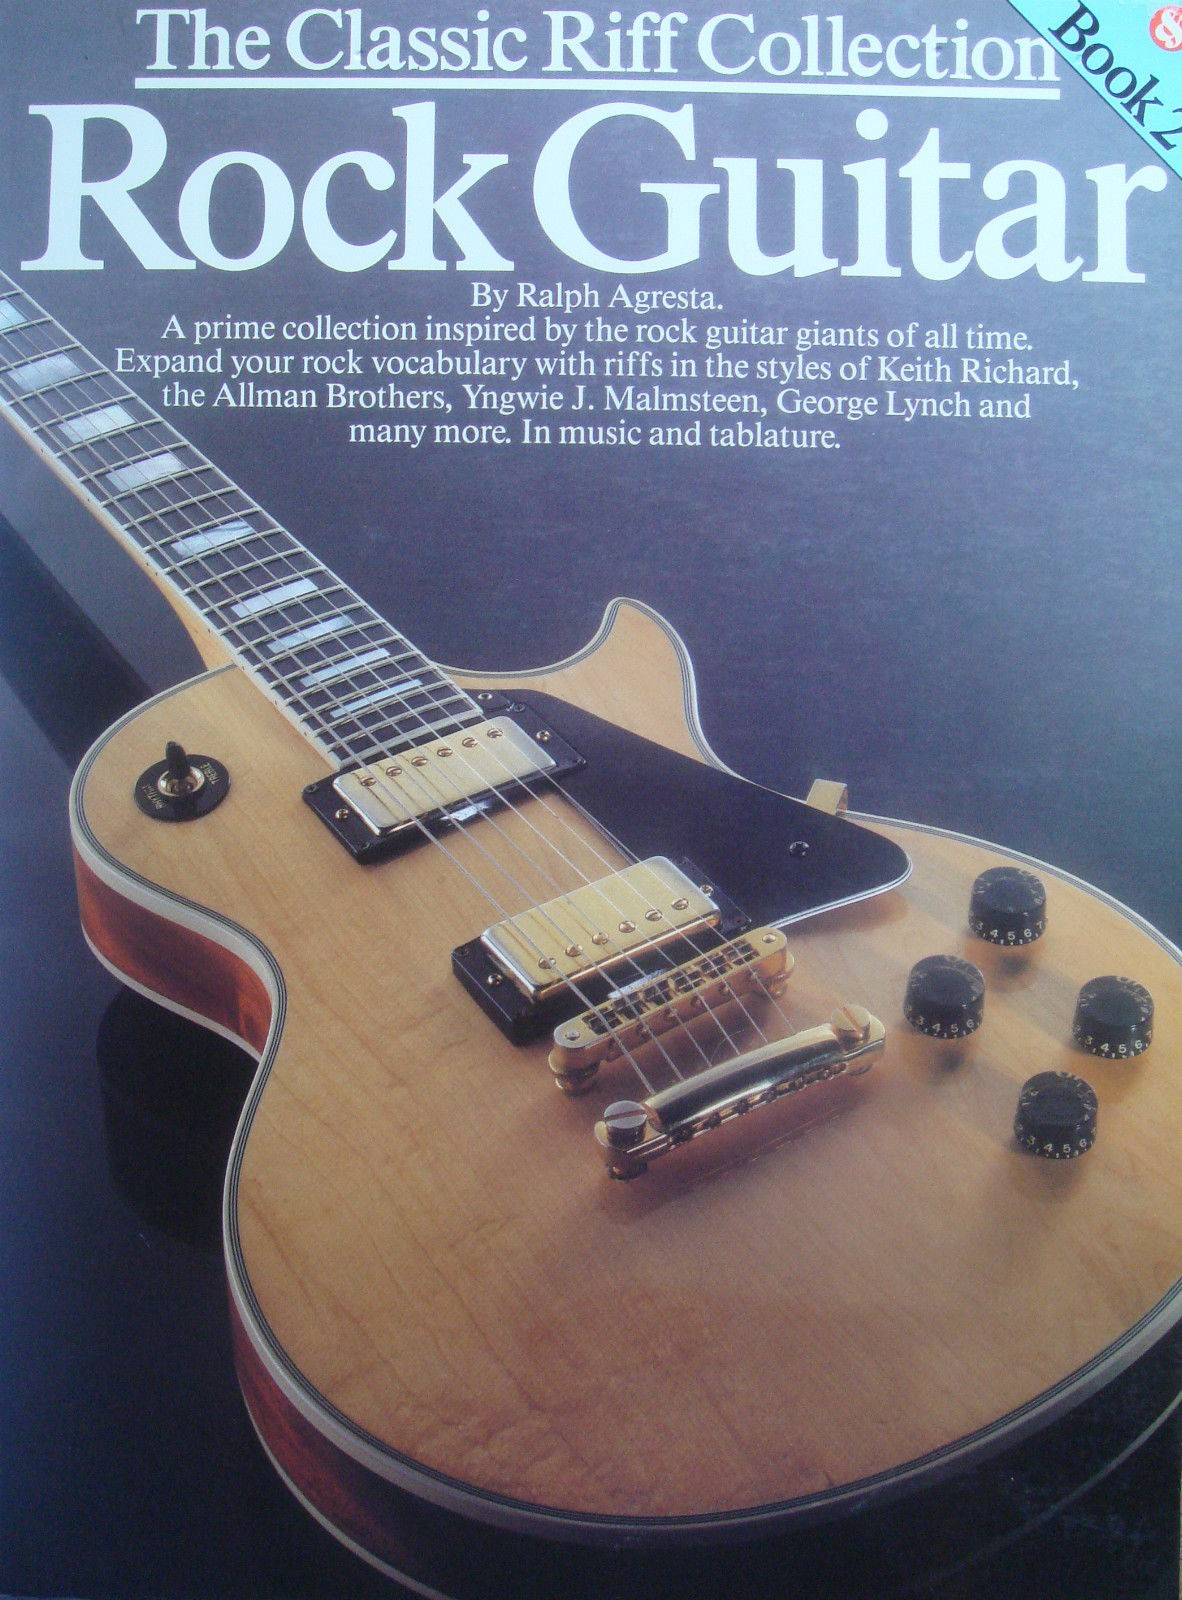 The Classic Riff Collection Rock Guitar Book 2 Notes Tab Technique Agresta B23